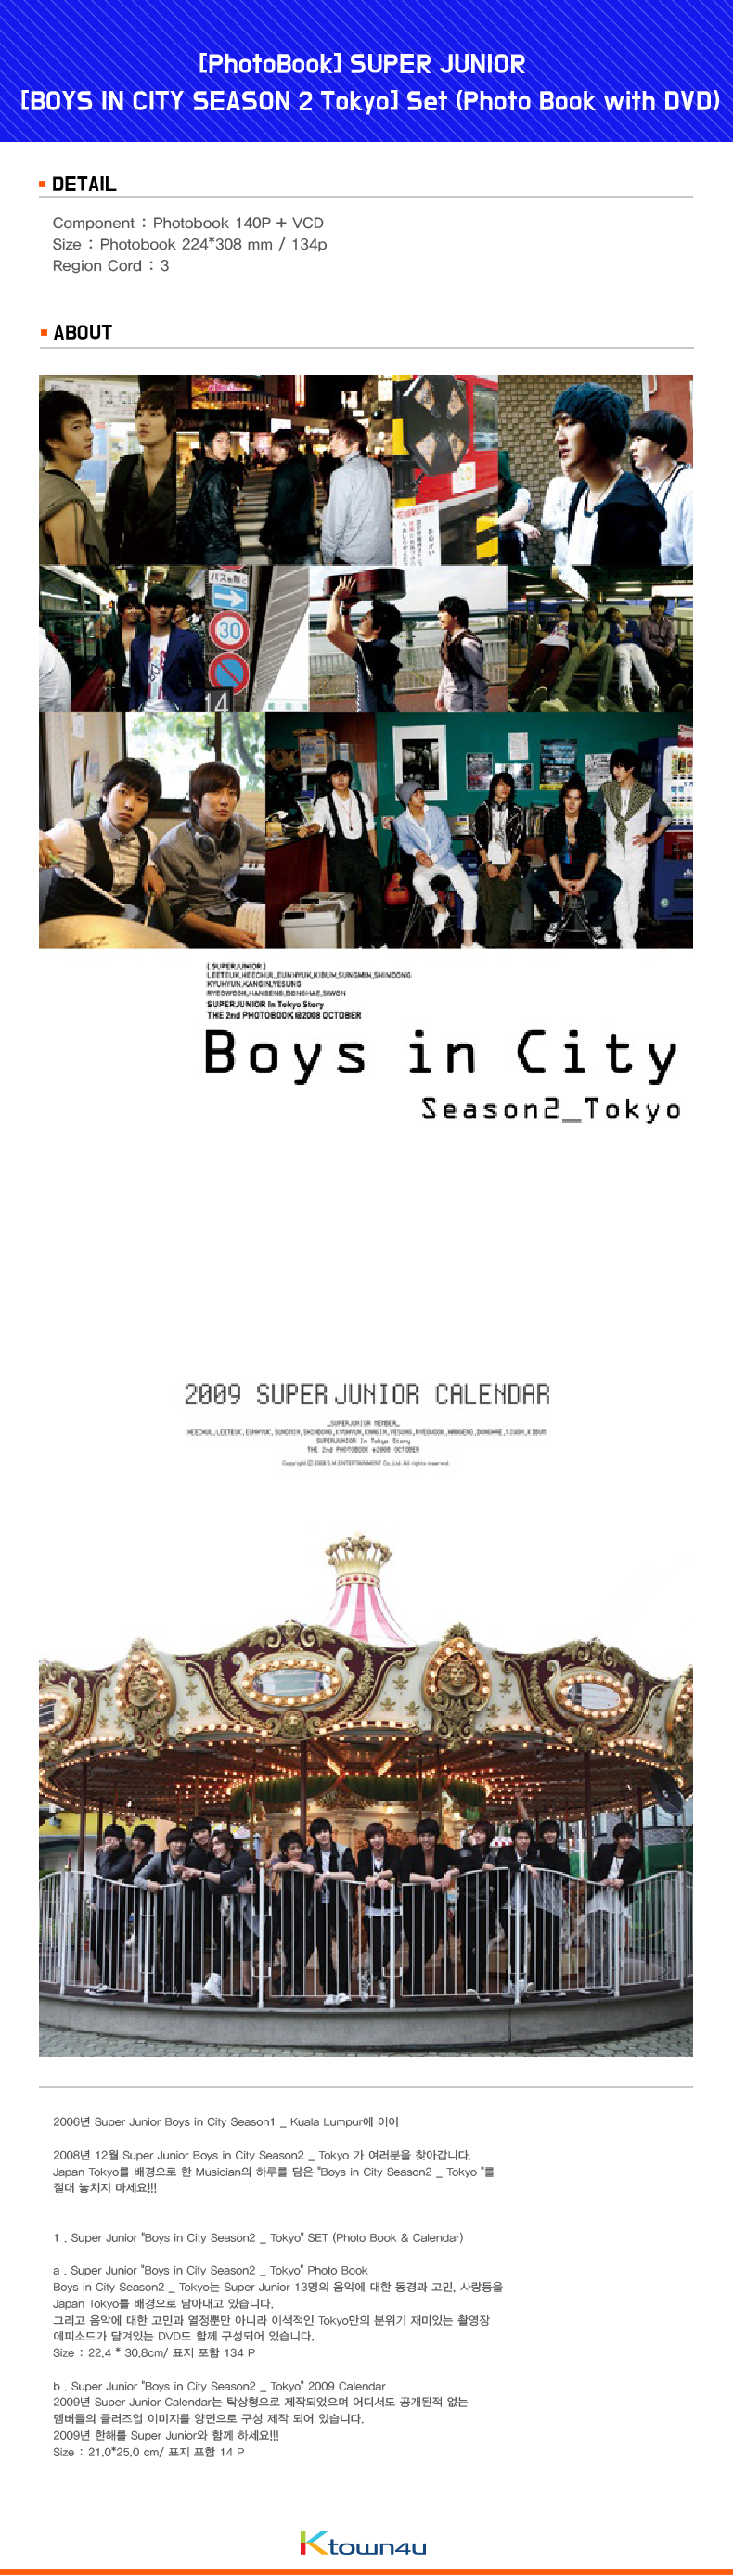 [写真] SUPER JUNIOR - BOYS IN CITY SEASON 2 东京